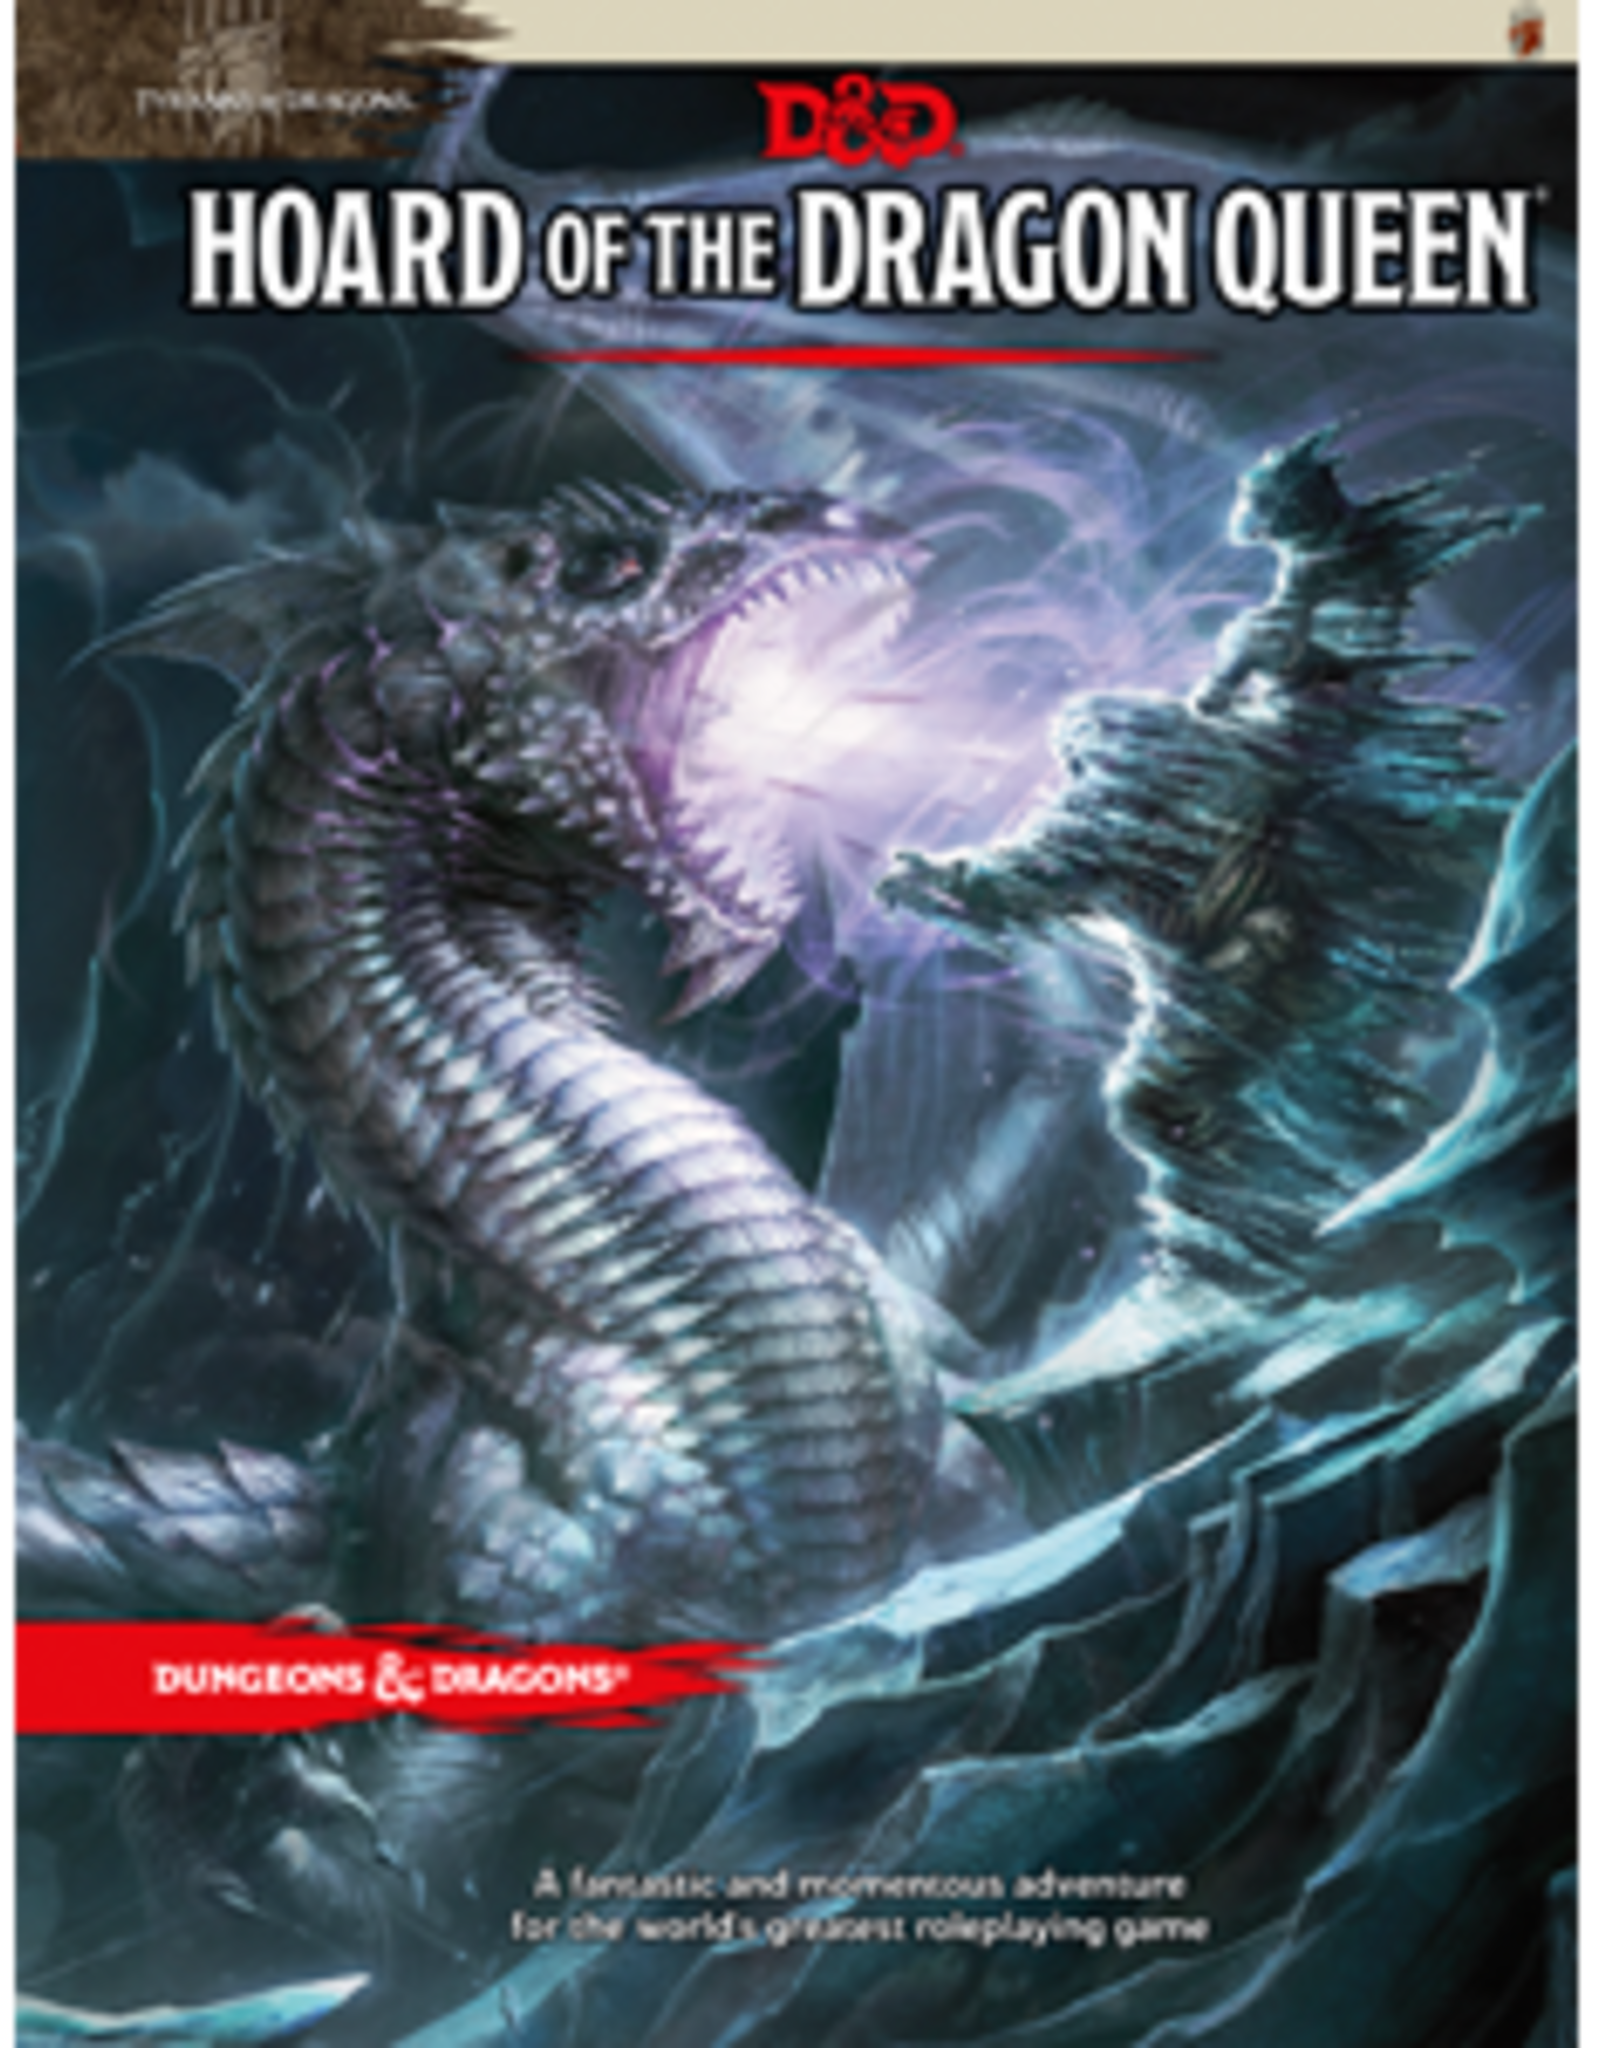 Dungeons & Dragons RPG: Tyranny of Dragons - Hoard of the Dragon Queen